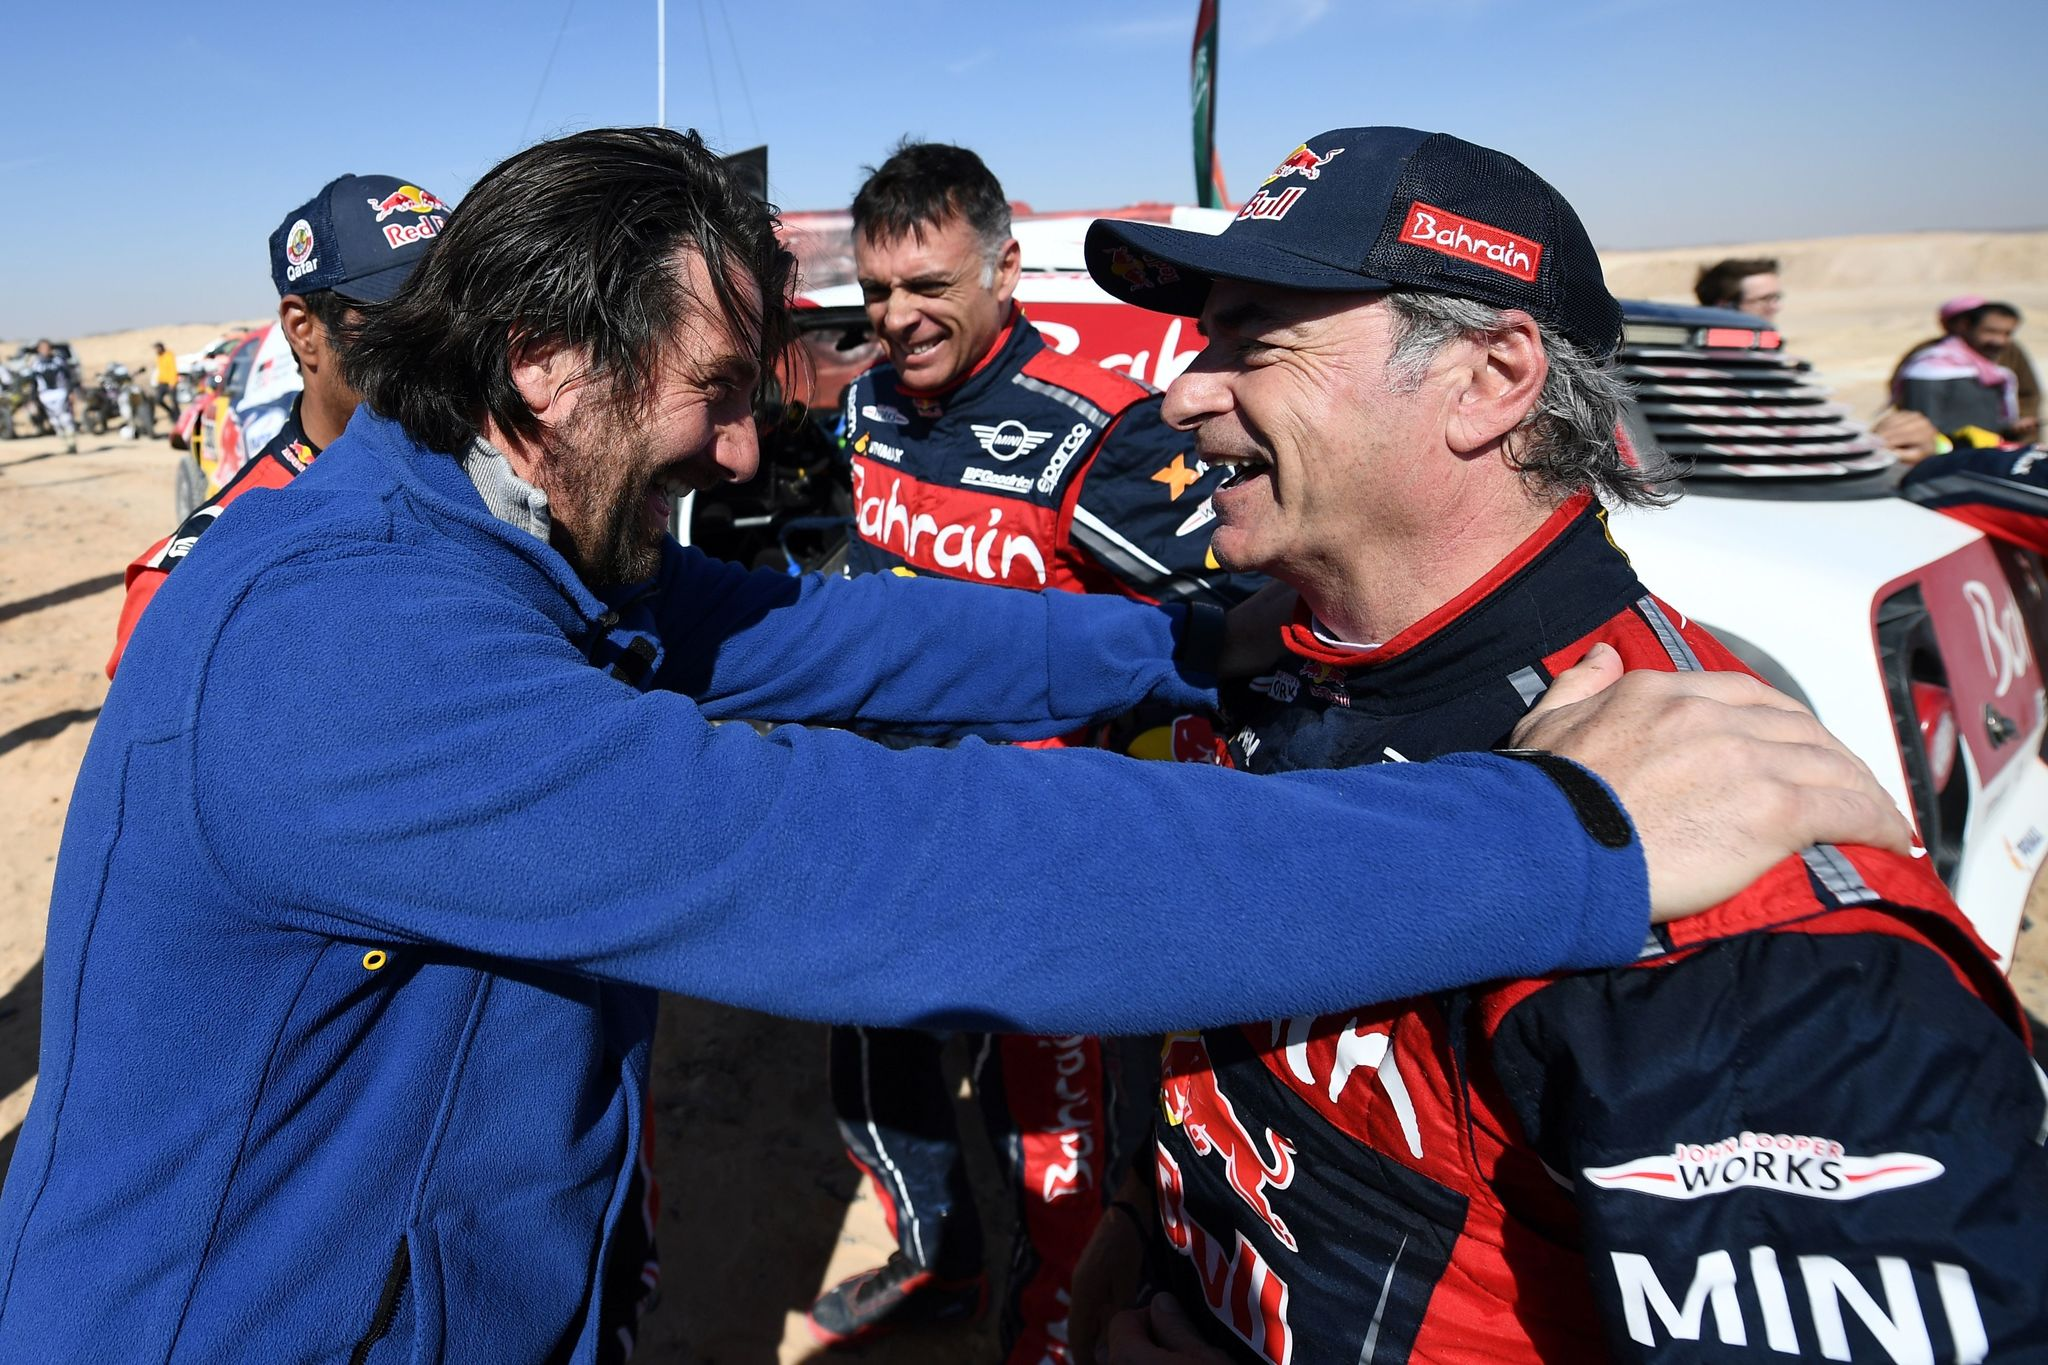 First-placed for the auto category JCW X-RAID Mini Team Spains driver Carlos Sainz (R), celebrates as he is congratulated by diector of the Dakar 2020 David <HIT>Castera</HIT> (L) on the finish area in Qiddiya at the end of the stage 12 of the Dakar 2020 between Haradh and Qiddiya, Saudi Arabia, on January 17, 2020. (Photo by FRANCK FIFE / AFP)